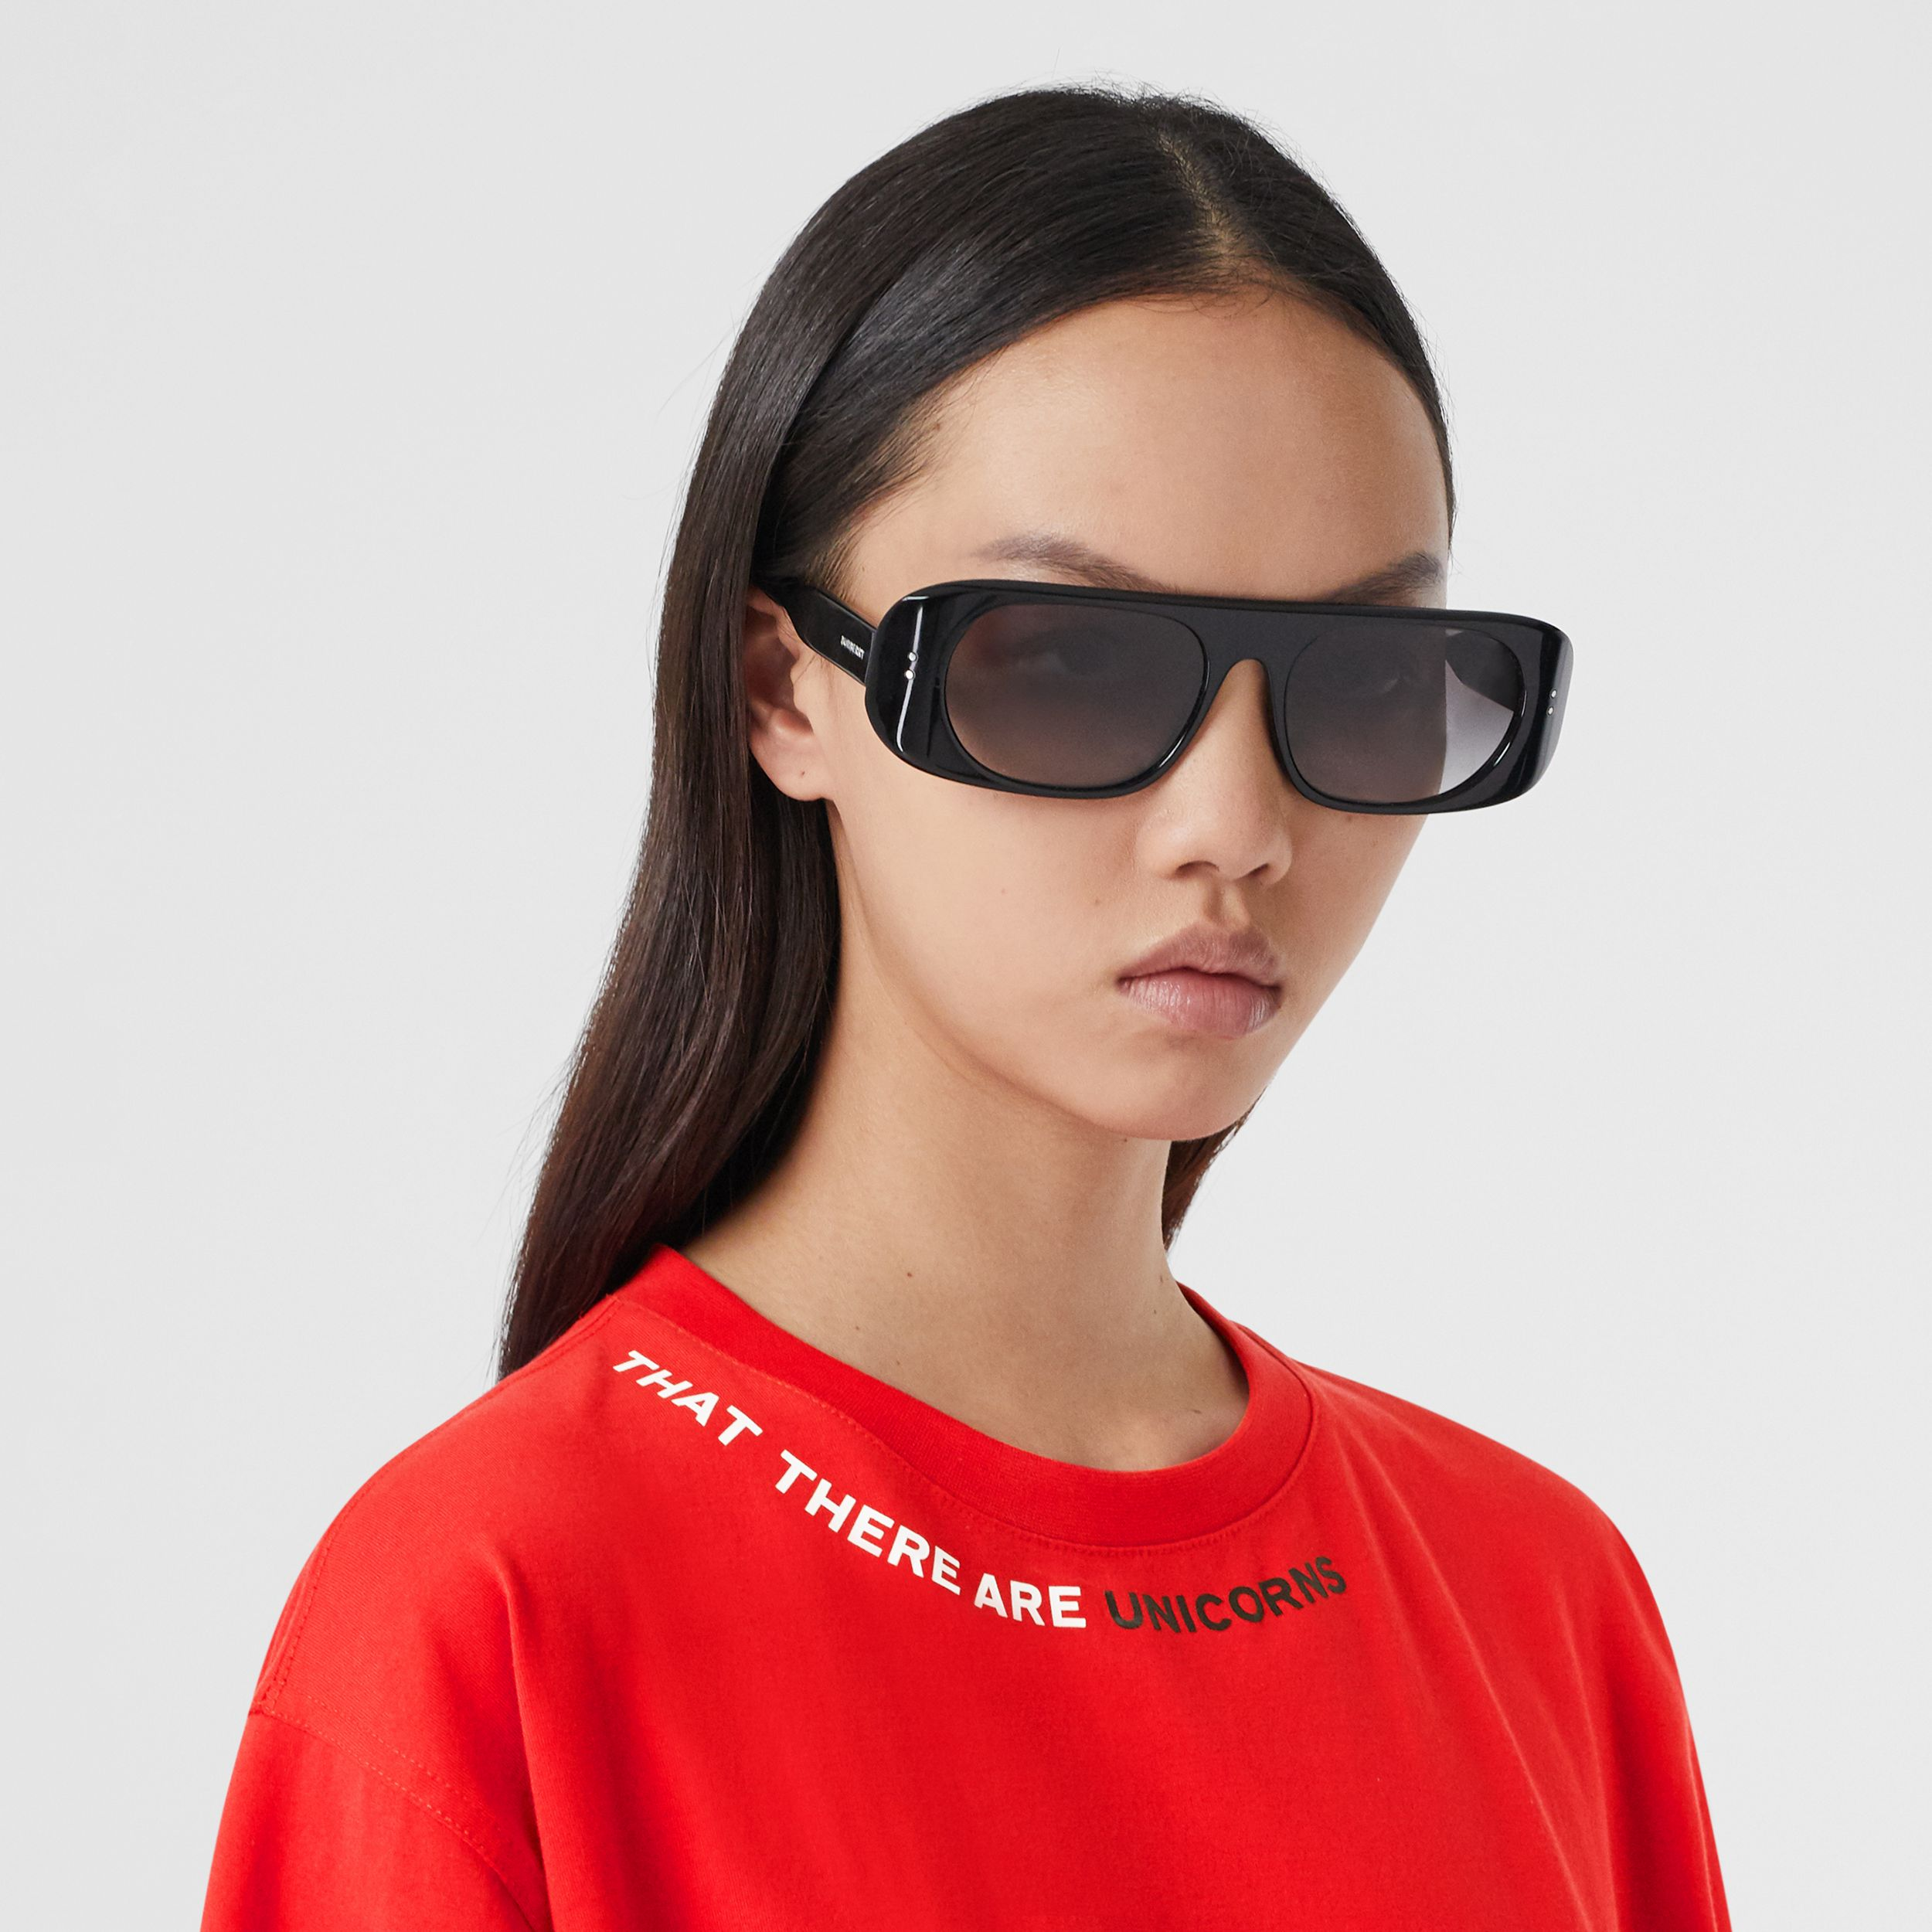 Quote Print Cotton Oversized T-shirt in Bright Red - Women | Burberry - 2